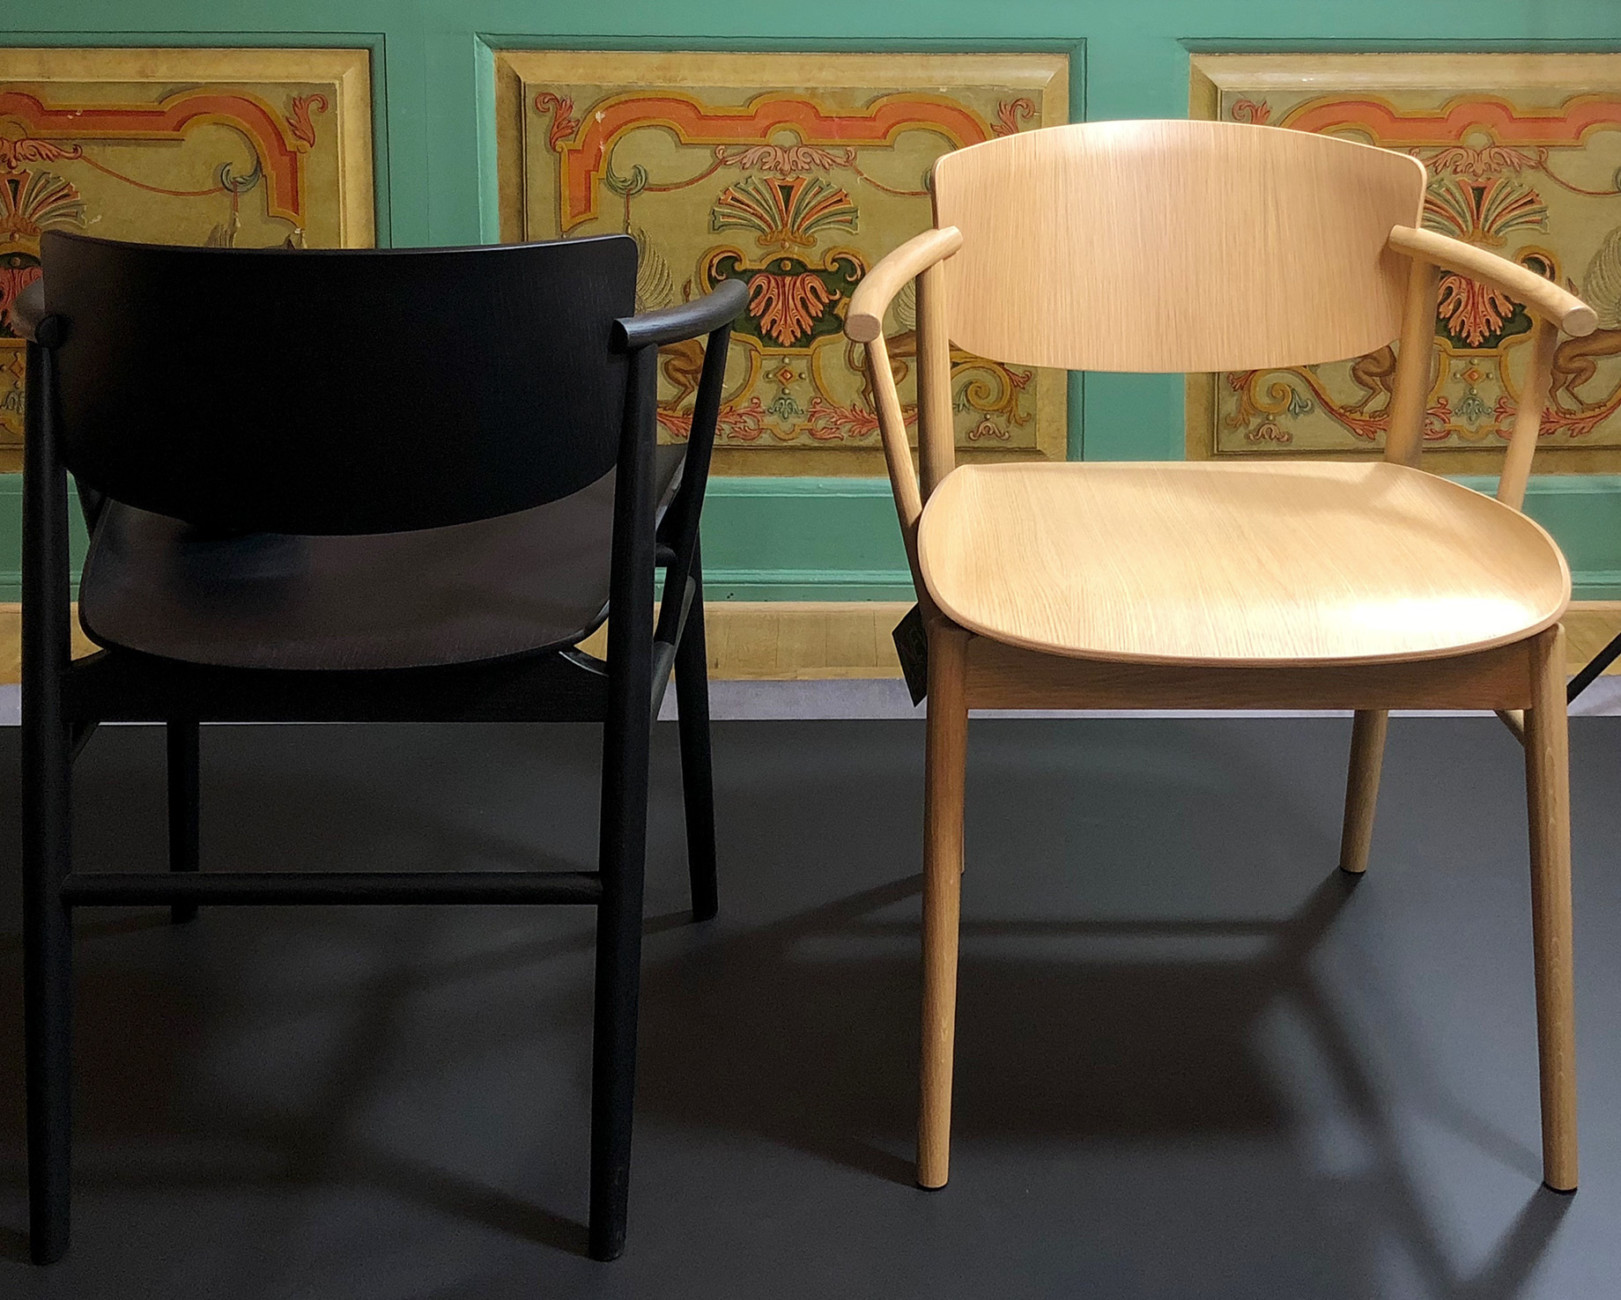 """Winner of the Stylepark Selected Award at the Salone: The """"NO1"""" chair by the Japanese design studio Nendo for Fritz Hansen"""